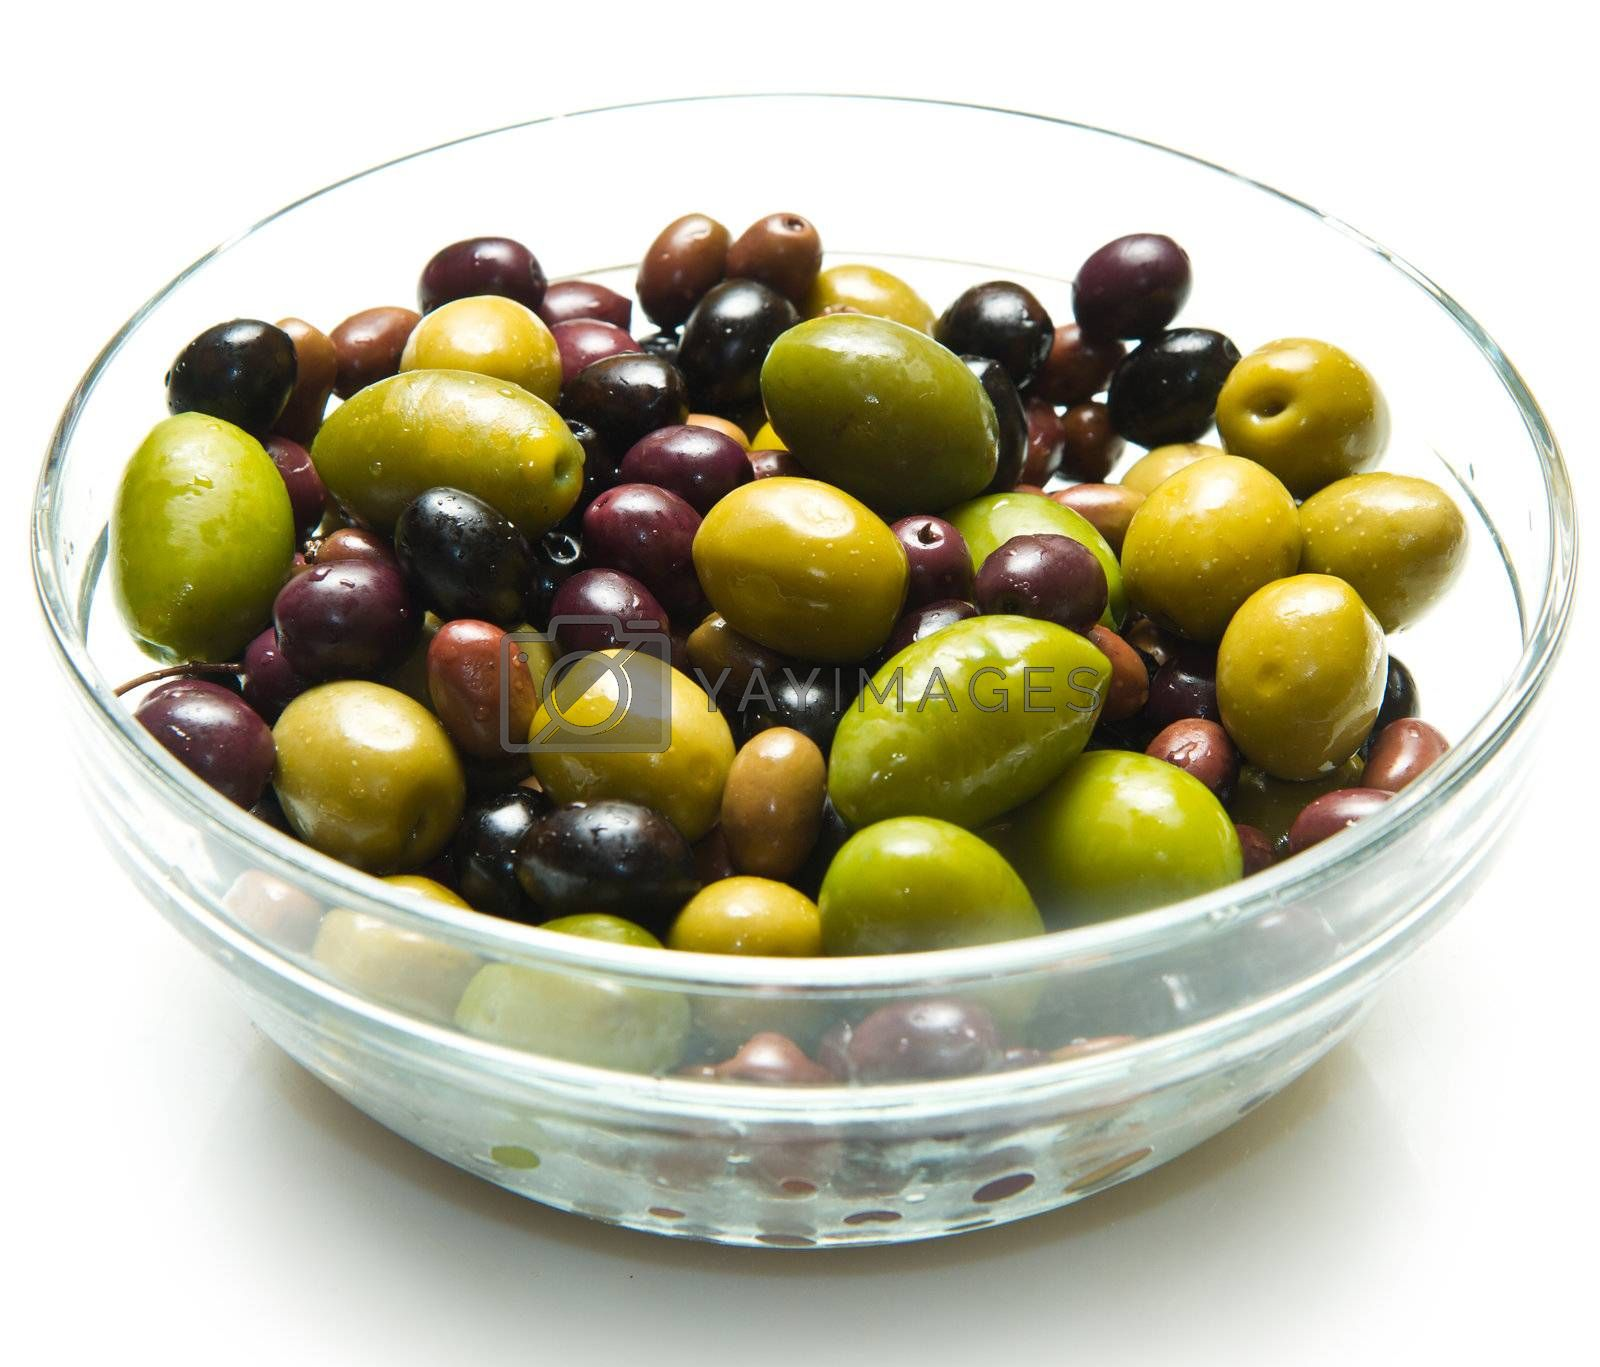 different kind of green and black olives on white background